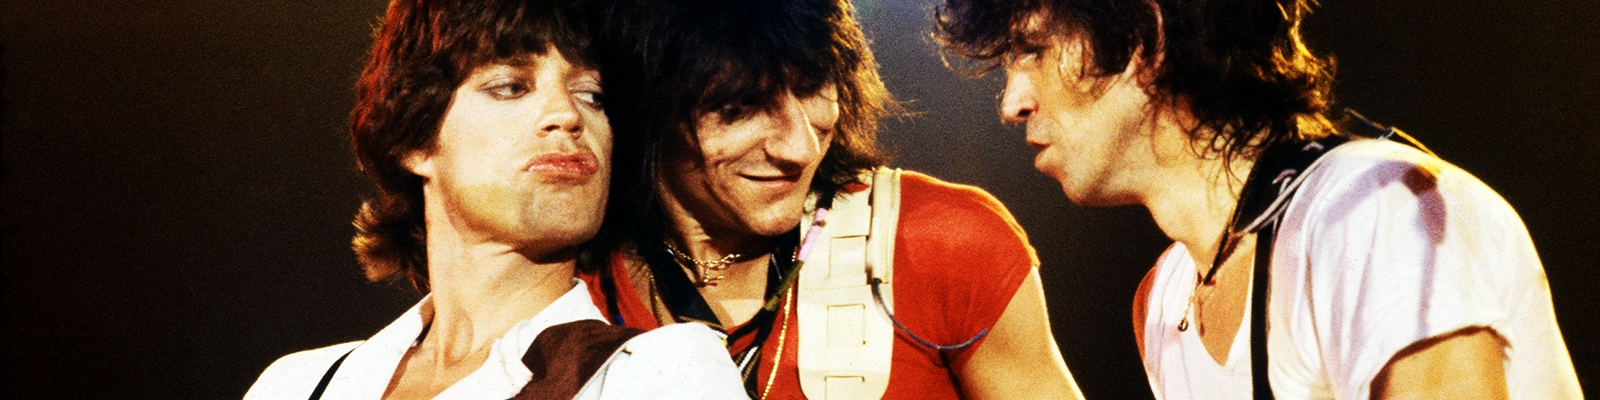 The Best Rolling Stones Songs, Ranked